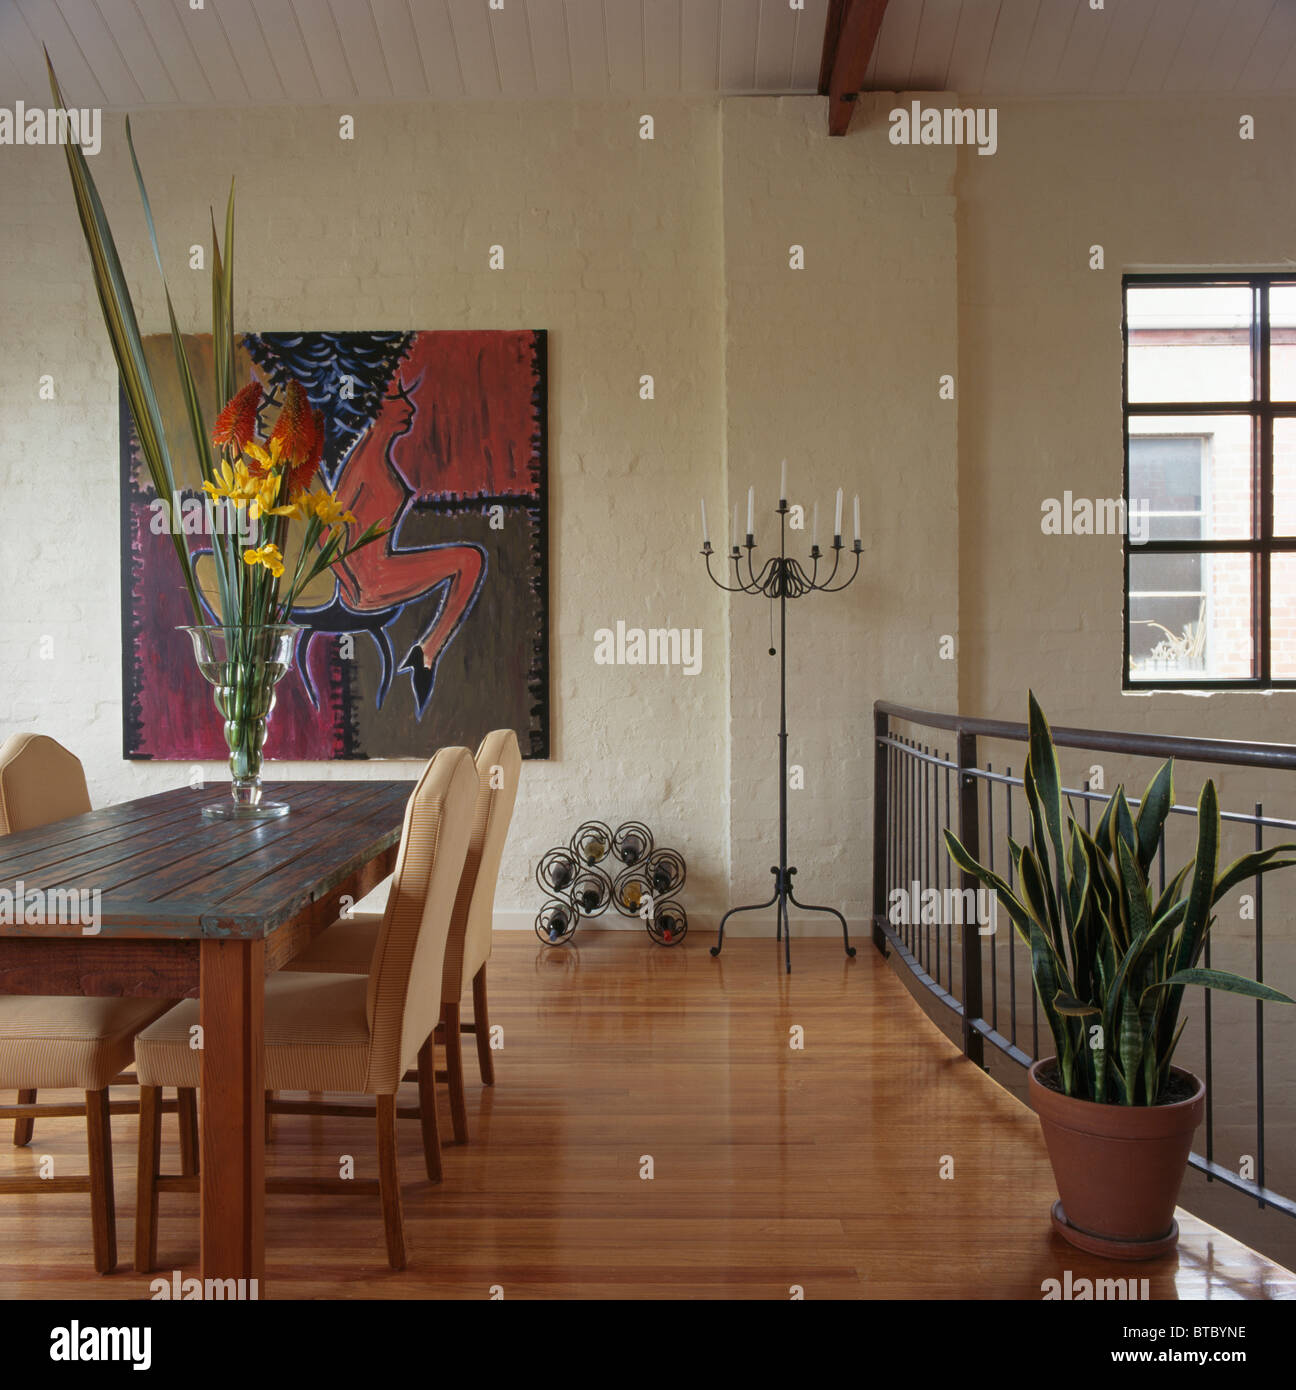 Vase Of Tall Flowers On Table In Modern Dining Room With Wooden Floor And  Cactus And Large Abstract Painting On Wall